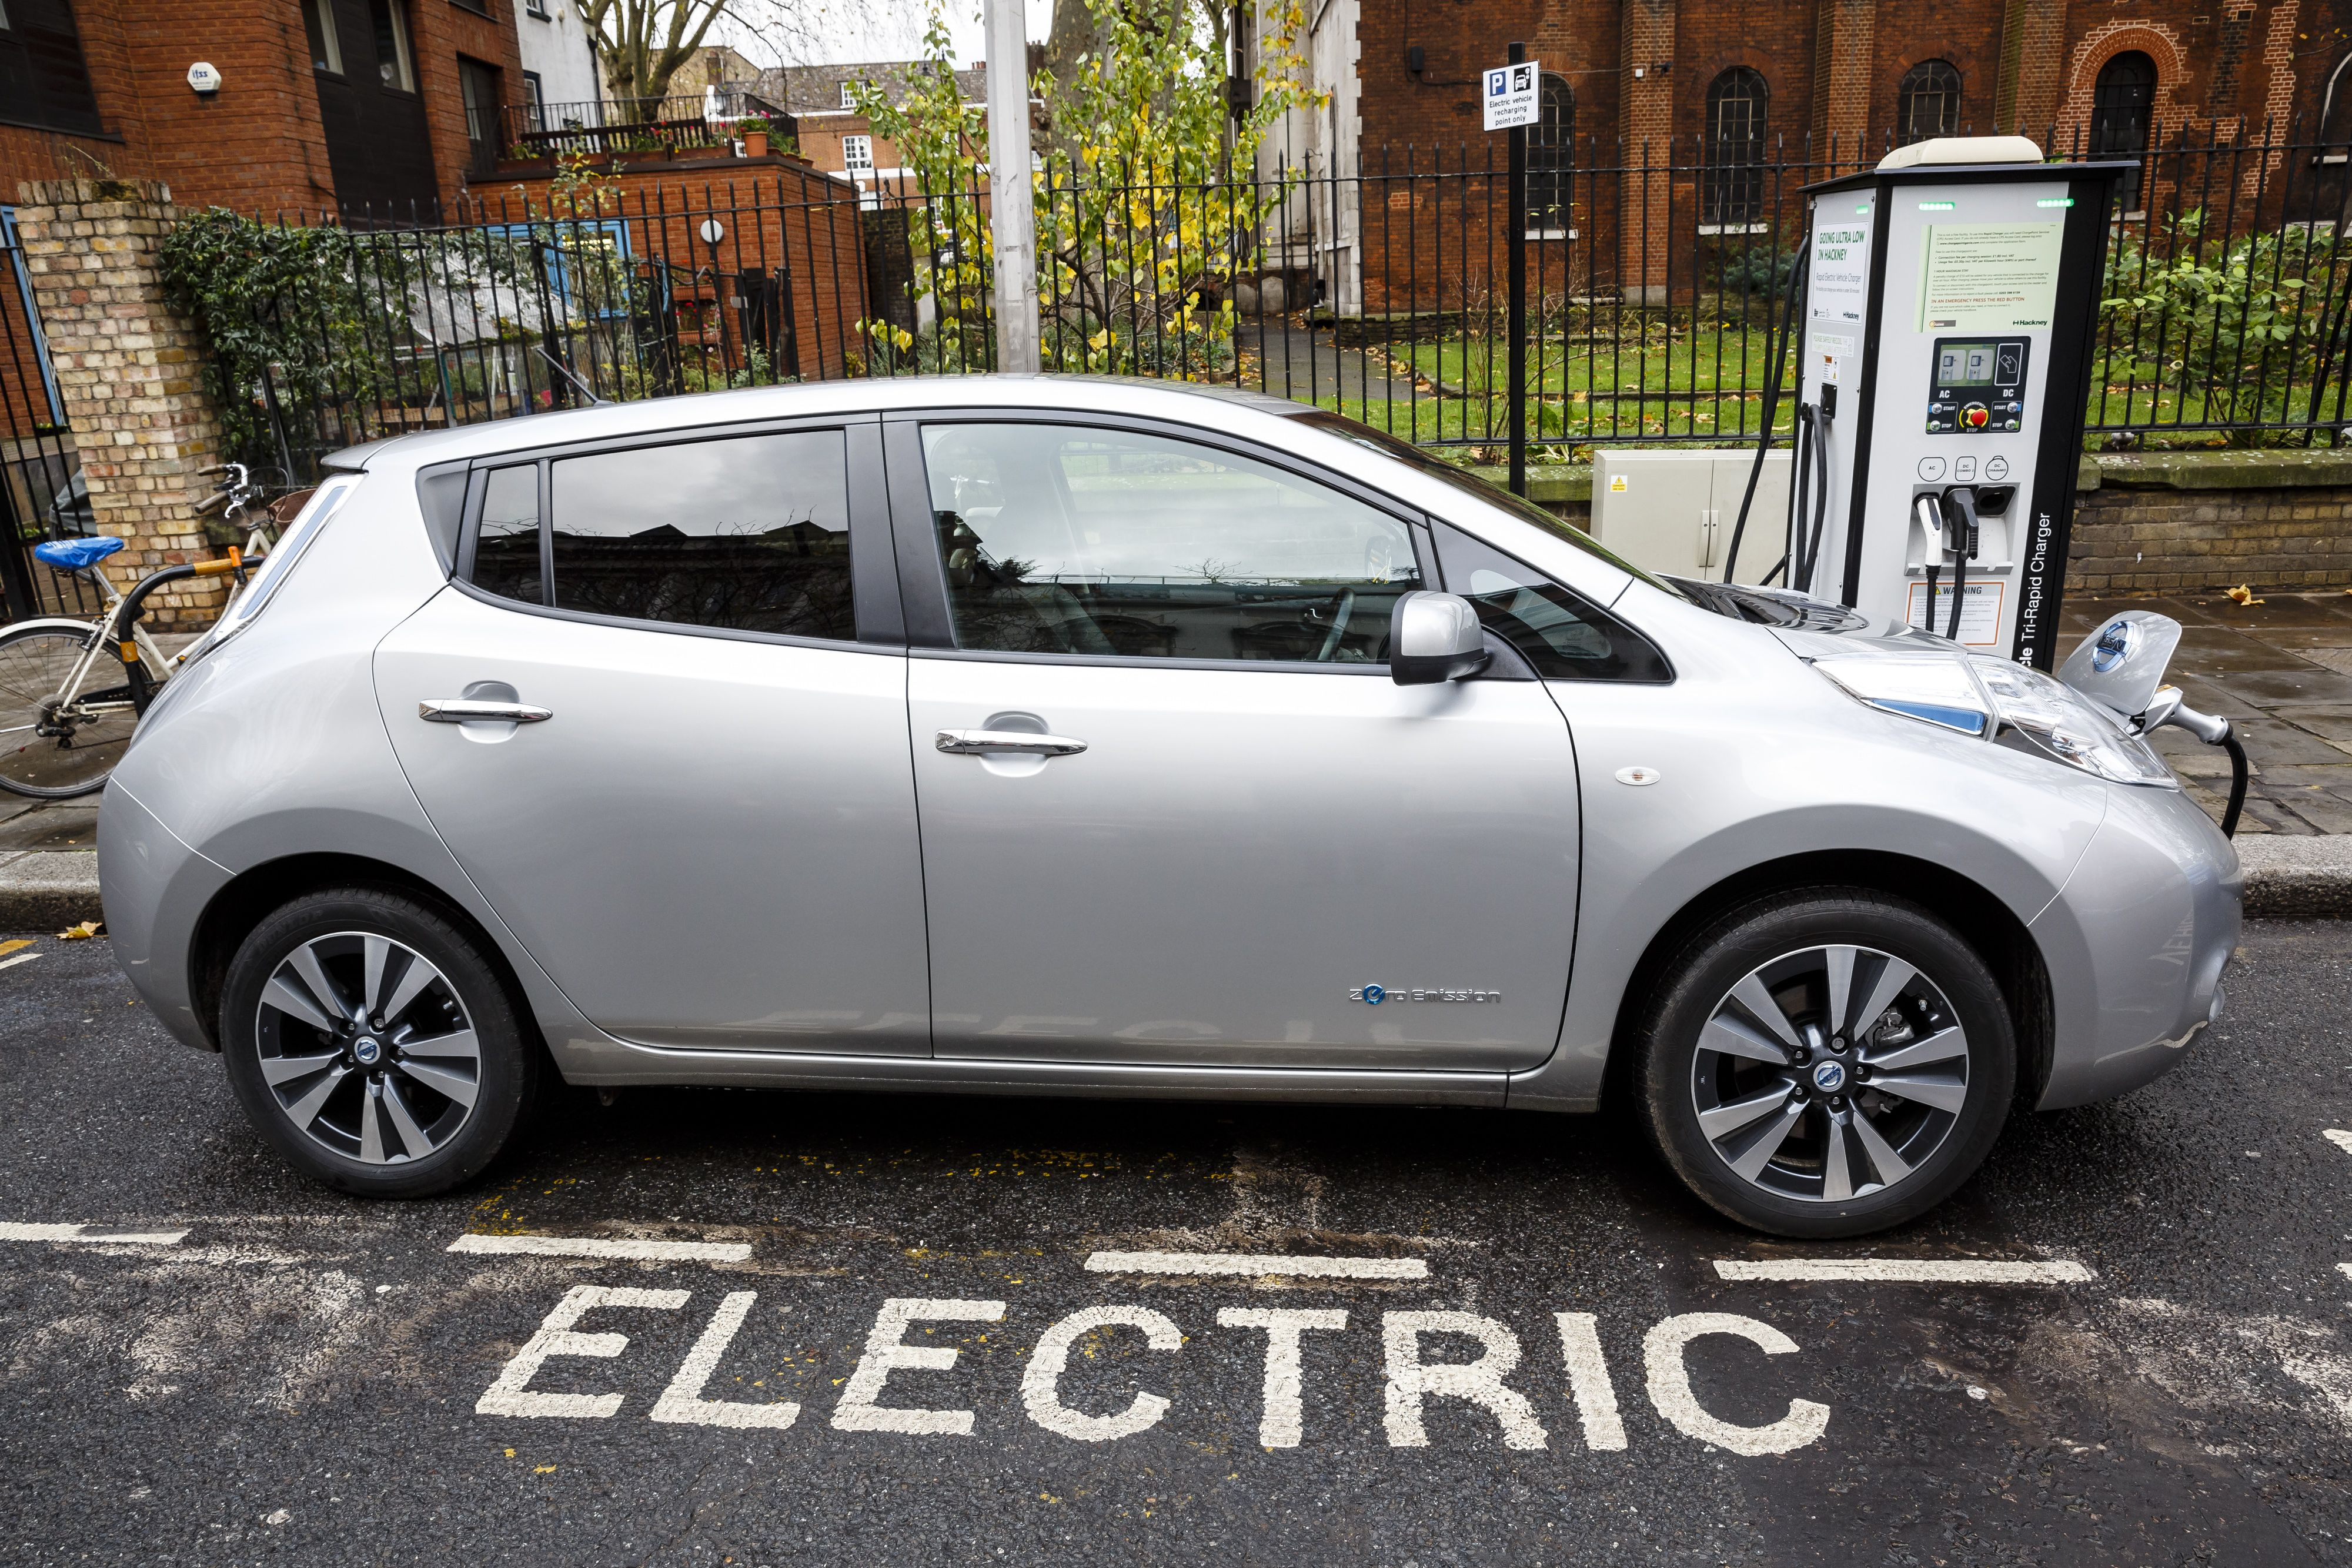 Everything you need to know about driving an electric car in winter conditions